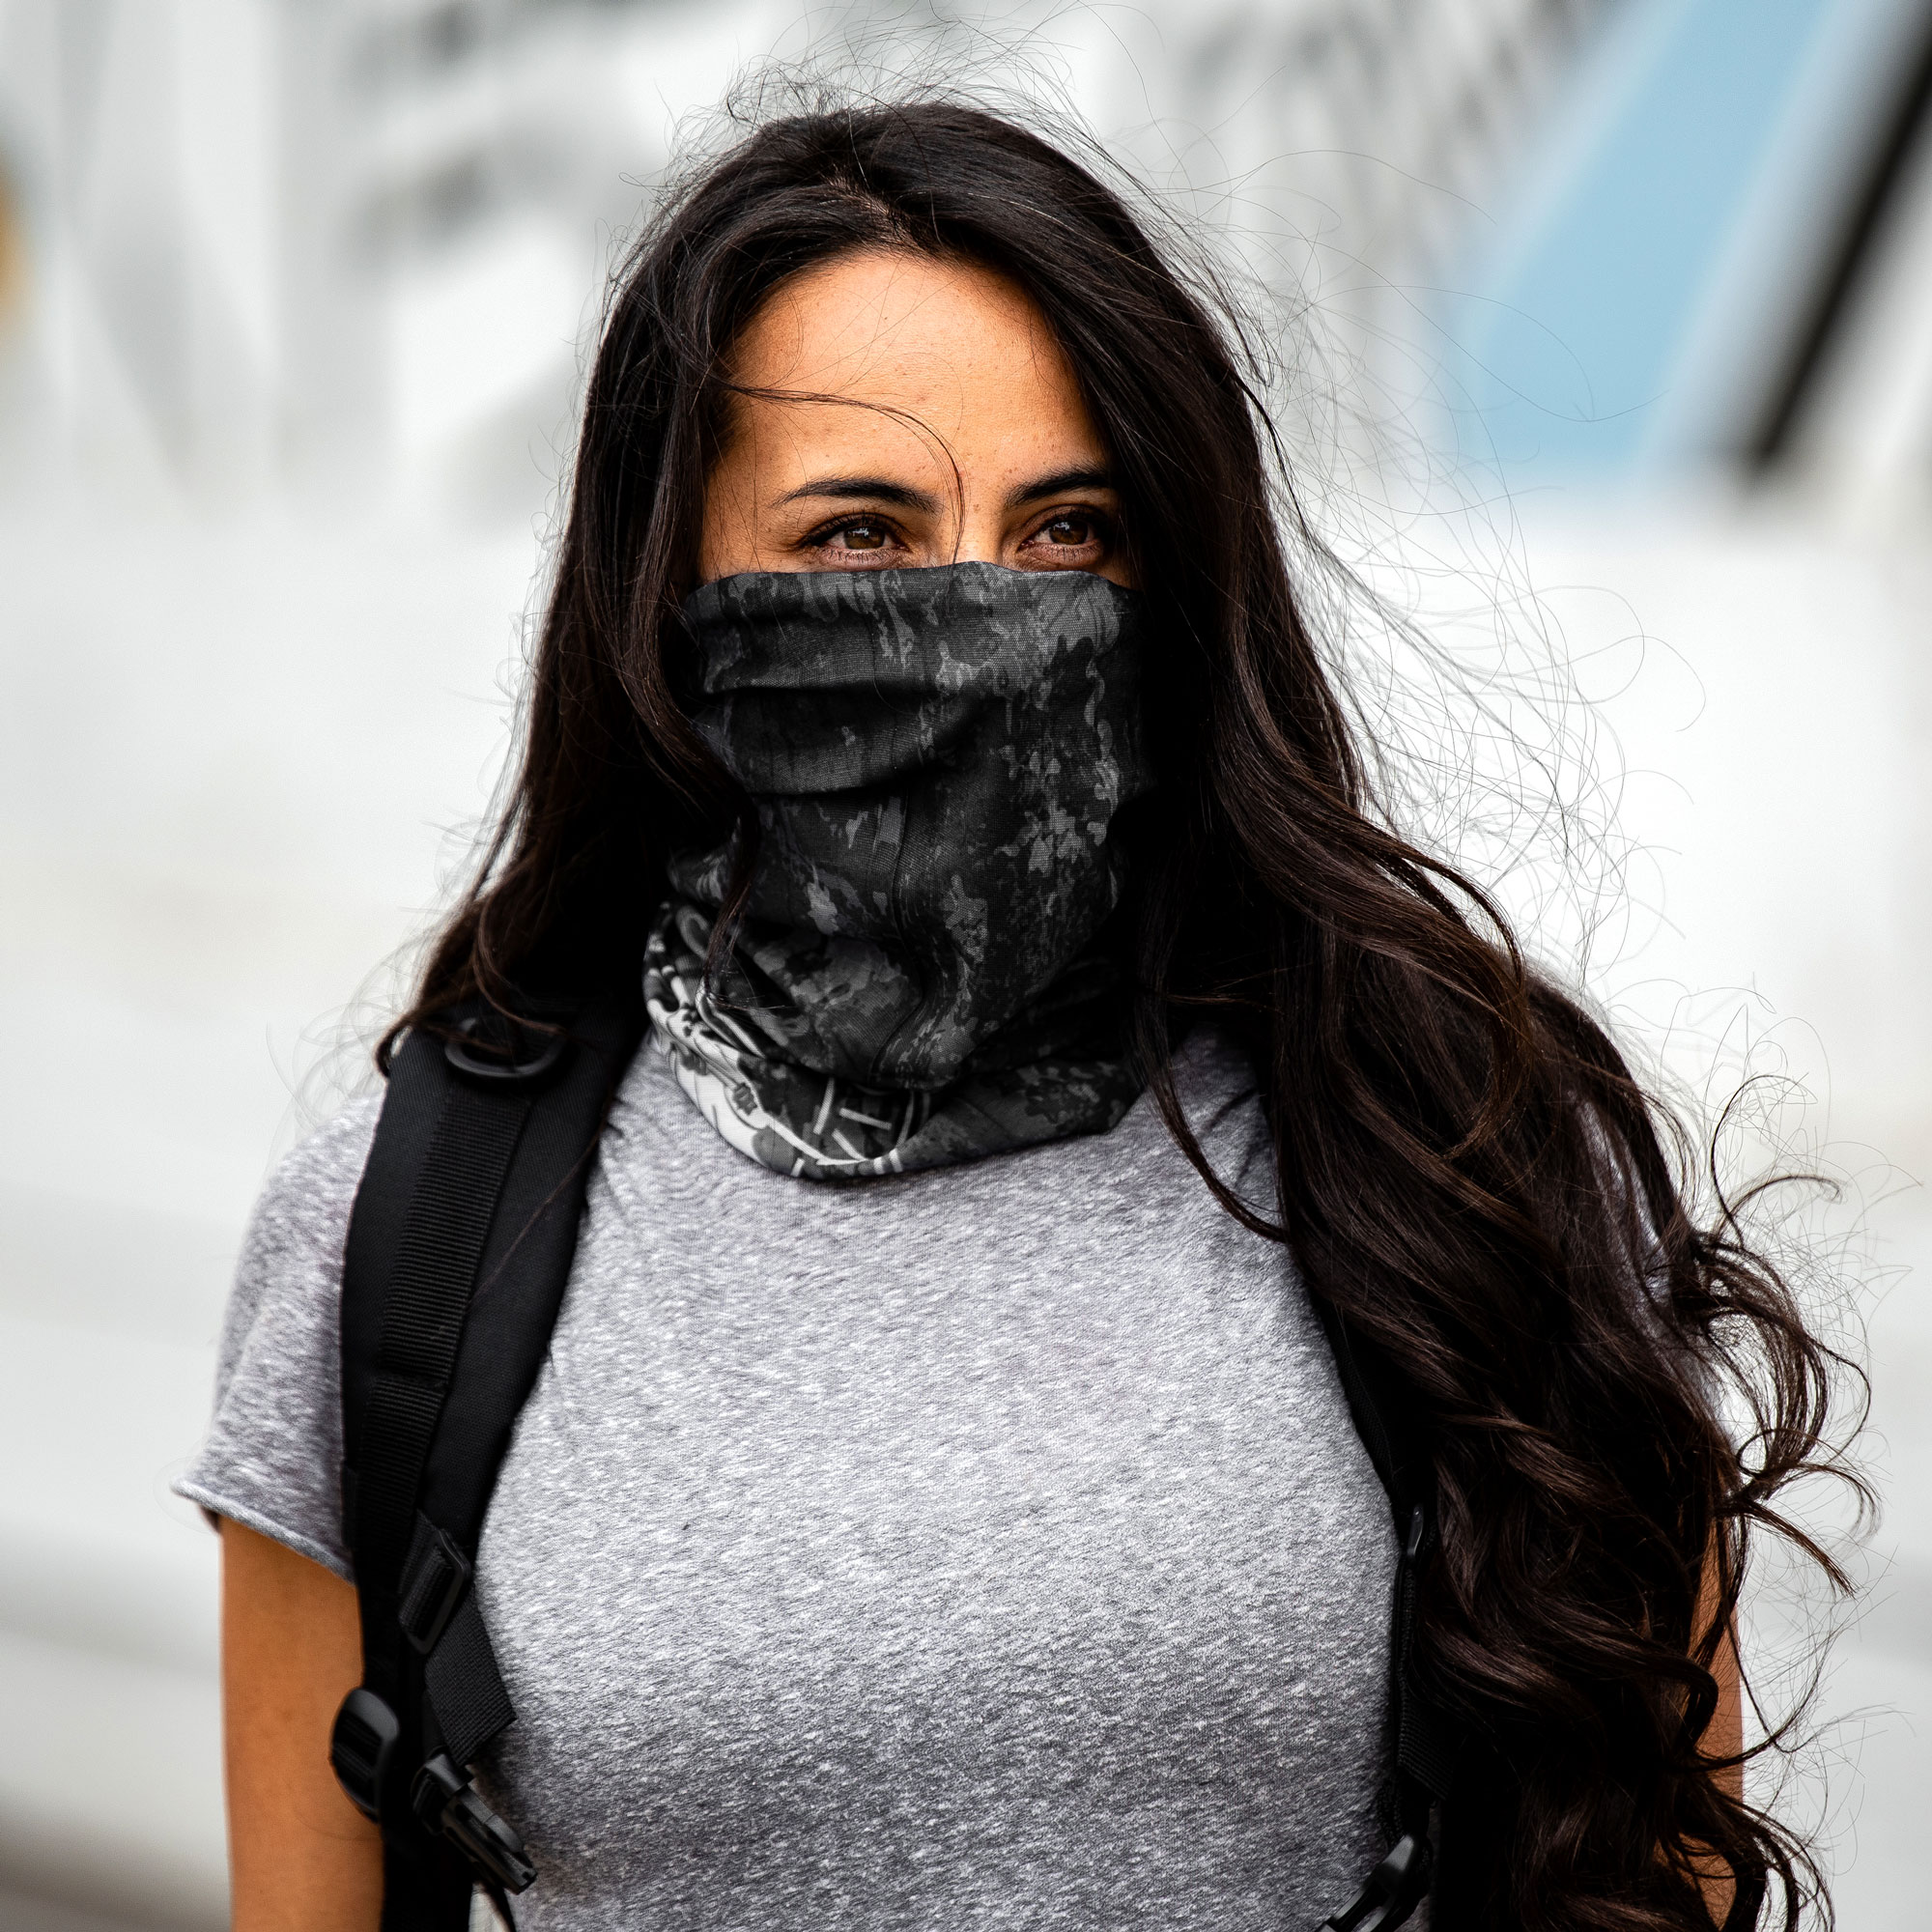 Can the Rogue Neck Gaiter Be Used As a Face Mask?